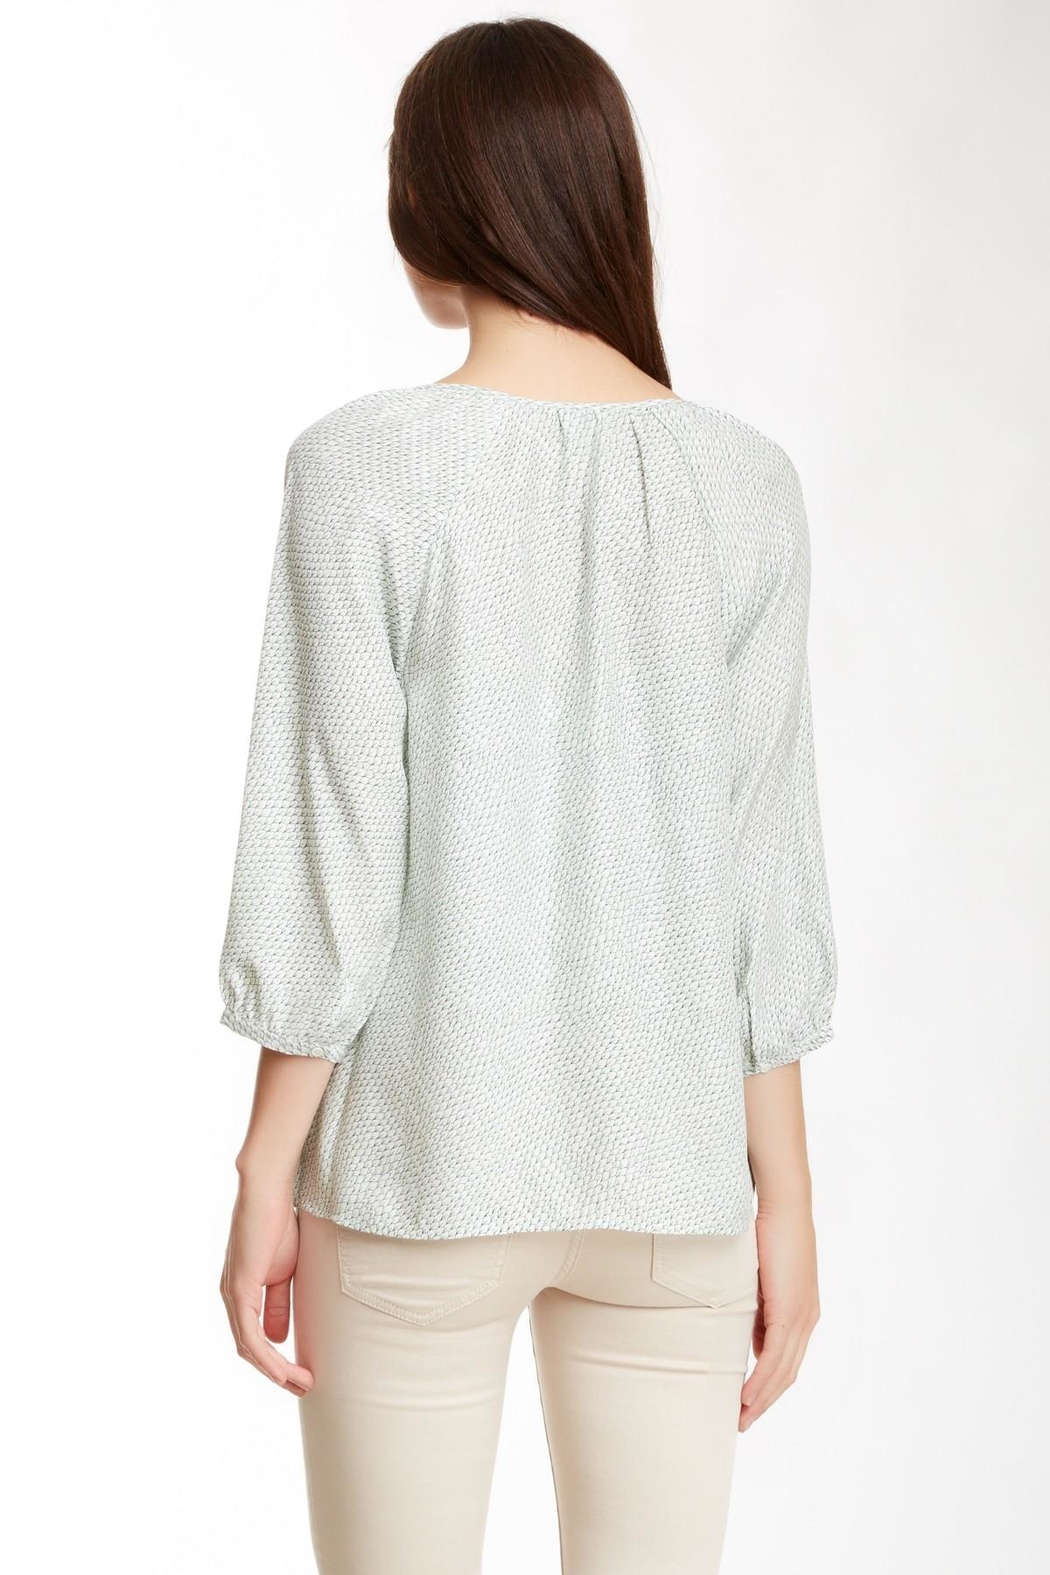 Joie Coralee Blouse - Front Full Image